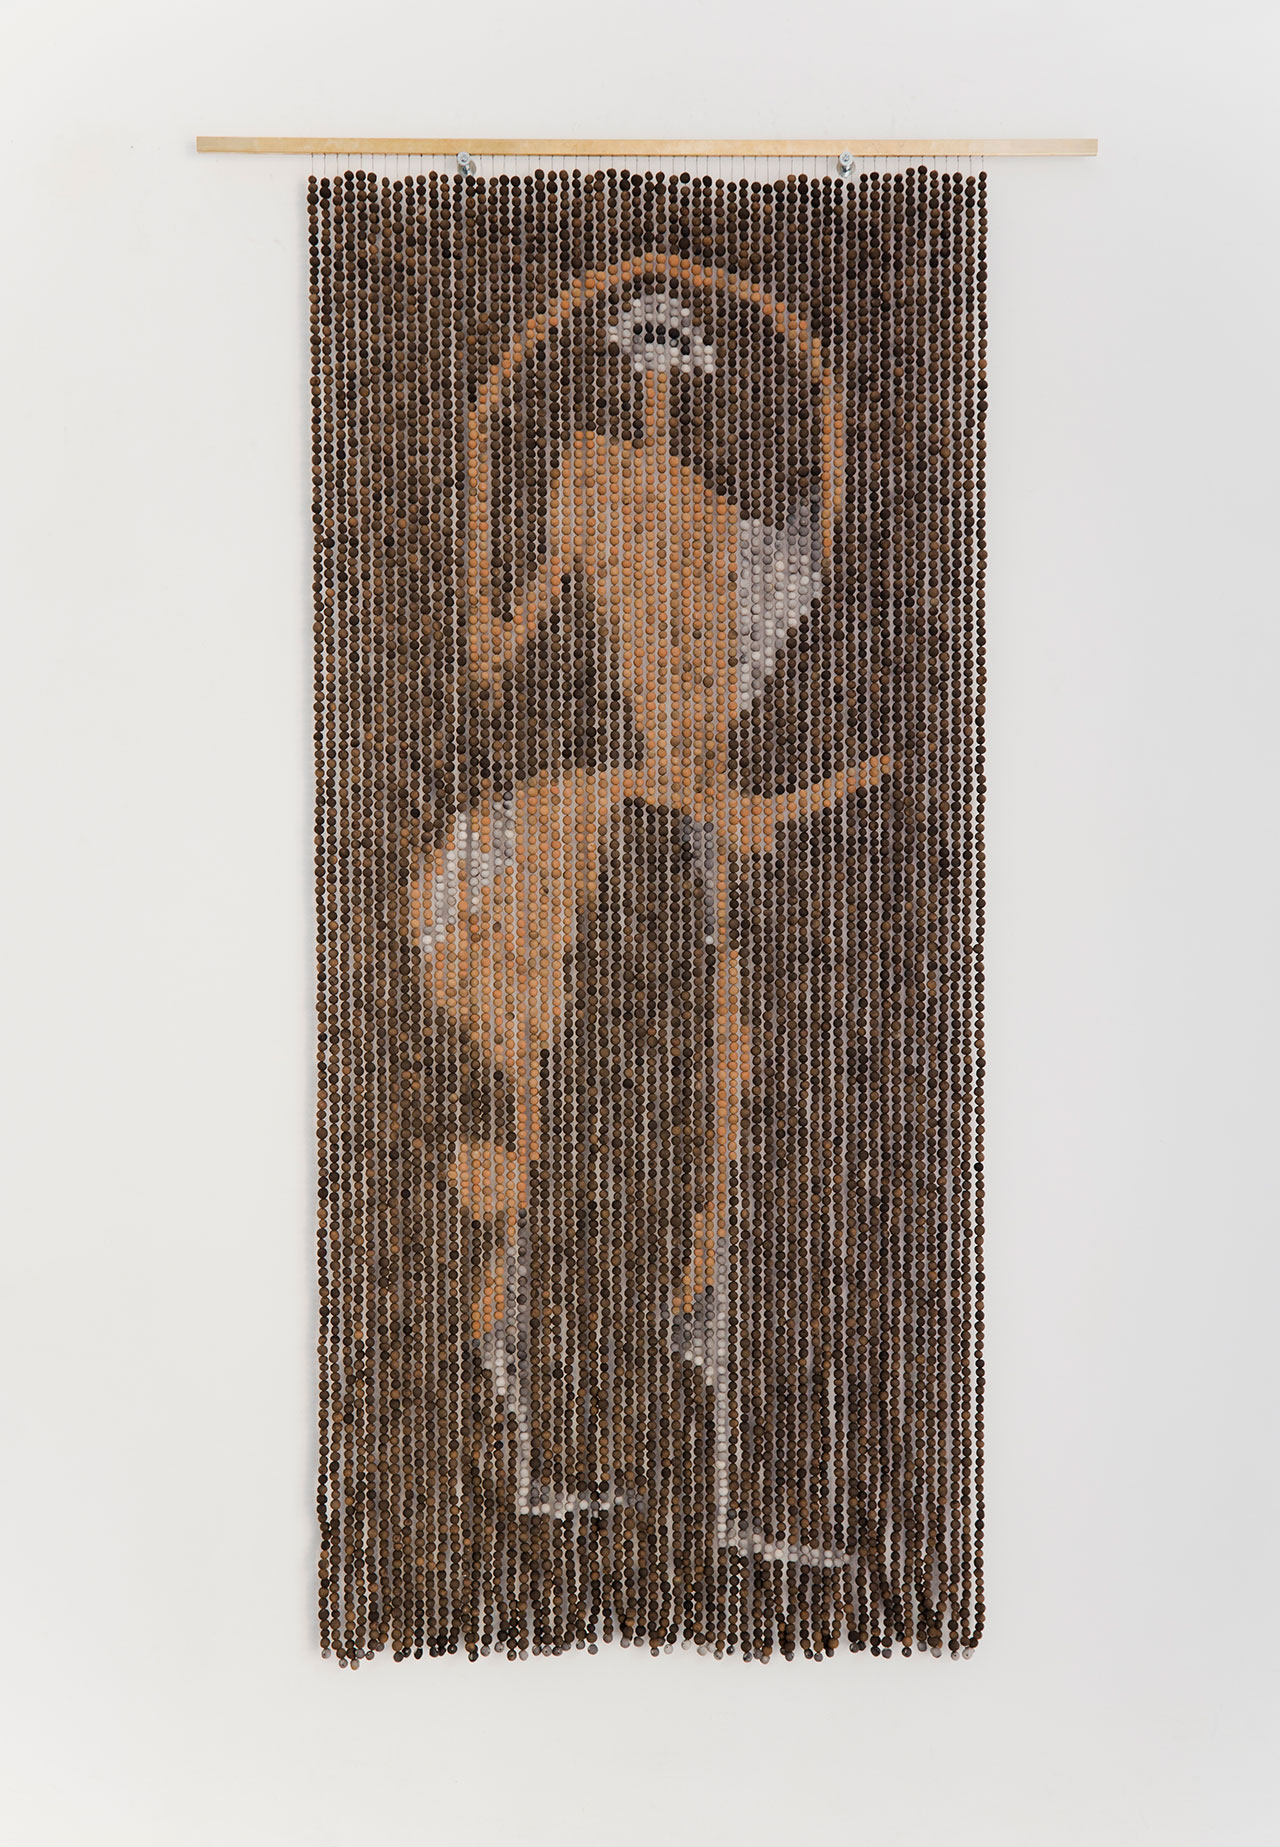 Zoë Paul, The Taste of a Cosmopolitan Shepherd with an Excellent Long Term Memory, 2014. Semi-fired ceramic bead curtain, 78 3/8 x 47 1/4 in (200 x 120 cm). Courtesy The Breeder, Athens. Photo © Giovanni Savi.